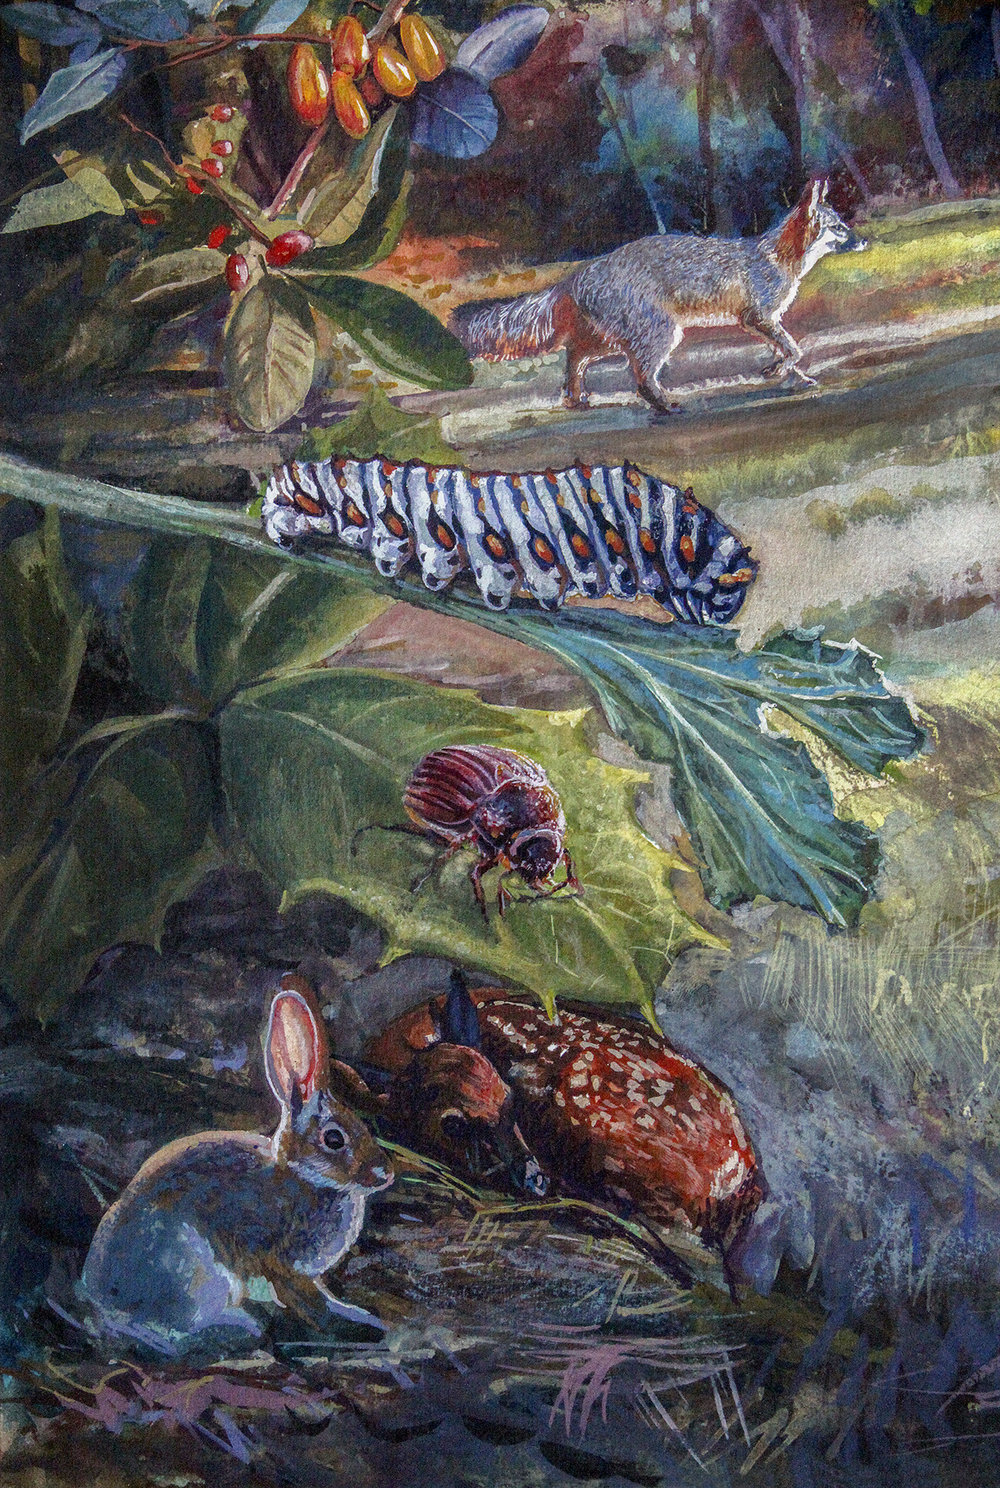 """Biophilia interactive mural """"- Lower left detail • 3' x 4' Watercolor. Scene depicts delicate balance of producers & consumers within the ecosystem. Biophilia Center in Warren County, FL. © KT"""